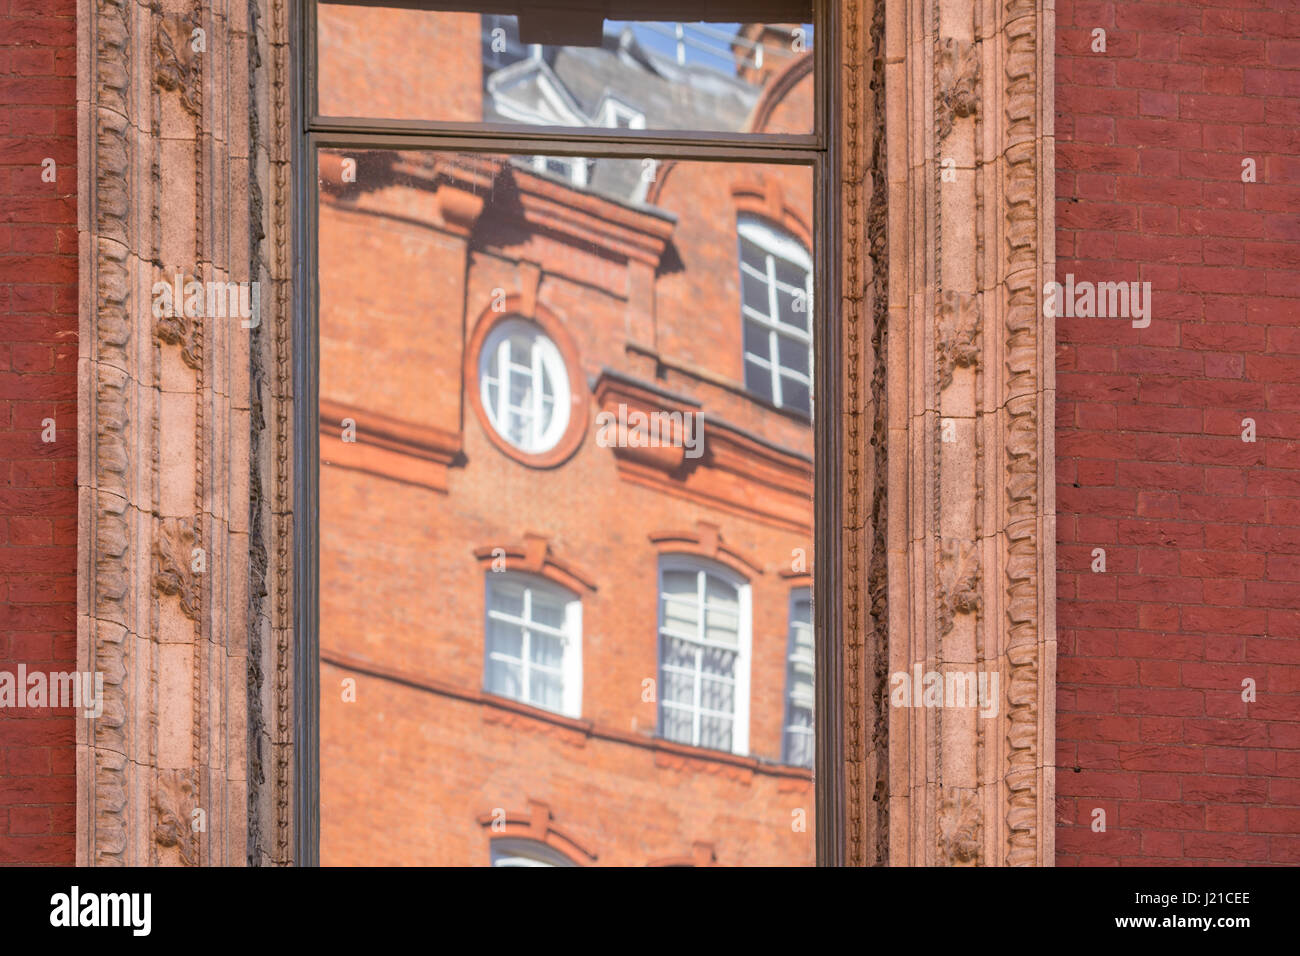 reflection of an old brick building in London in an a window with elaborate molding, London England, UK - Stock Image